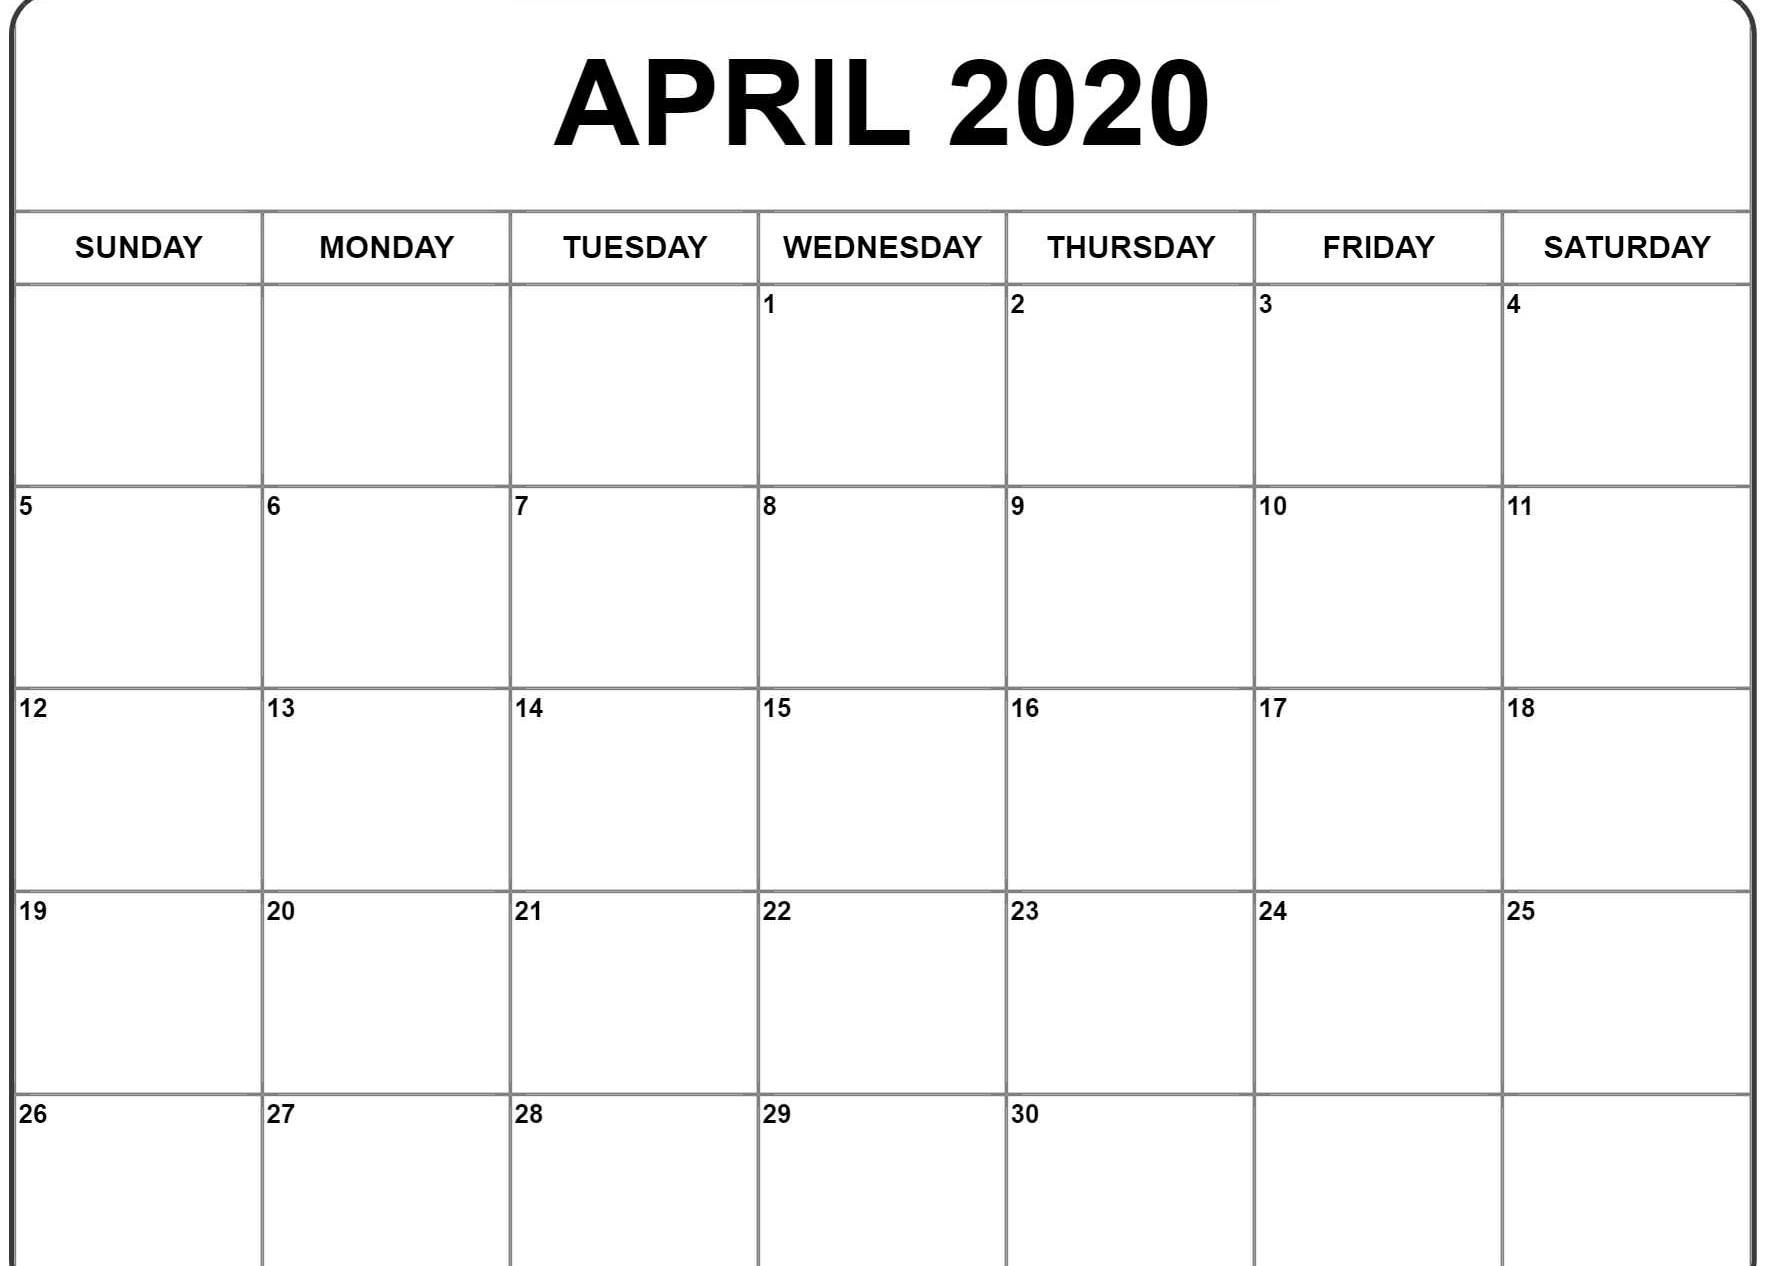 Excellent Free Of Charge April 2020 Calendar Style All inside Free Printable April 2020 Calendar